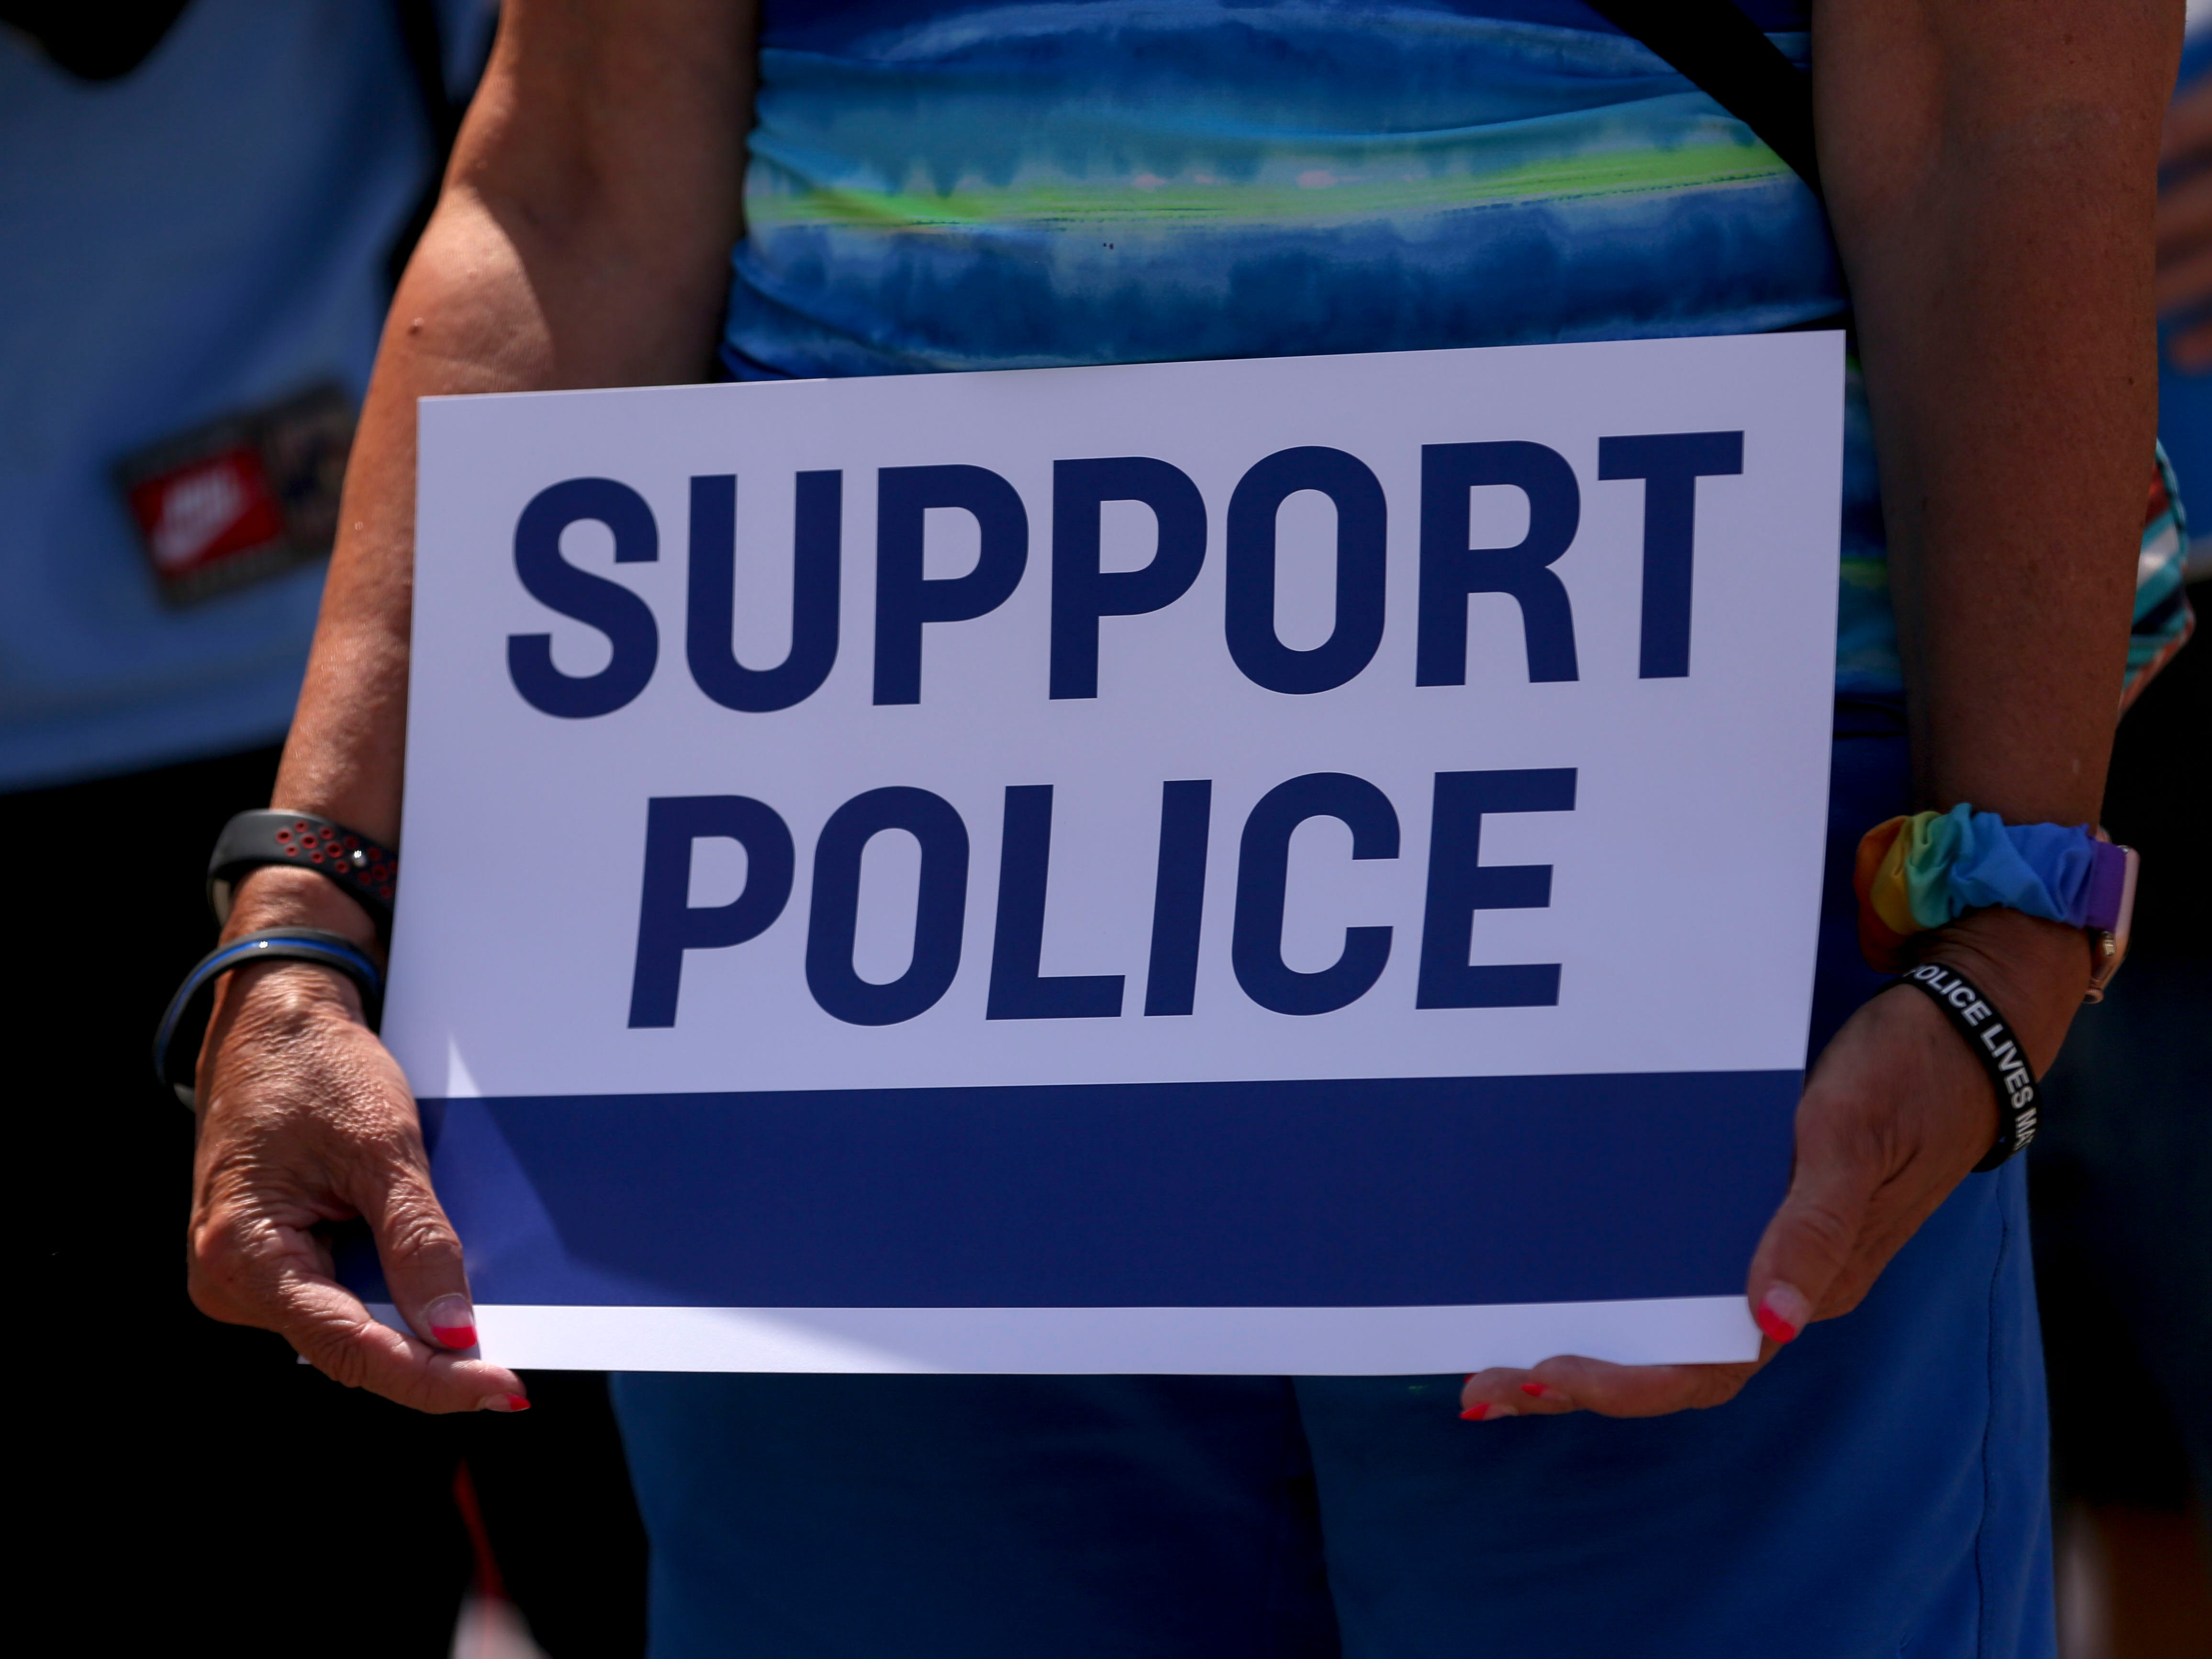 A demonstrator holds a sign during the Back the Blue rally at the Oregon State Capitol, in Salem, Oregon, on Saturday, July 11, 2020.